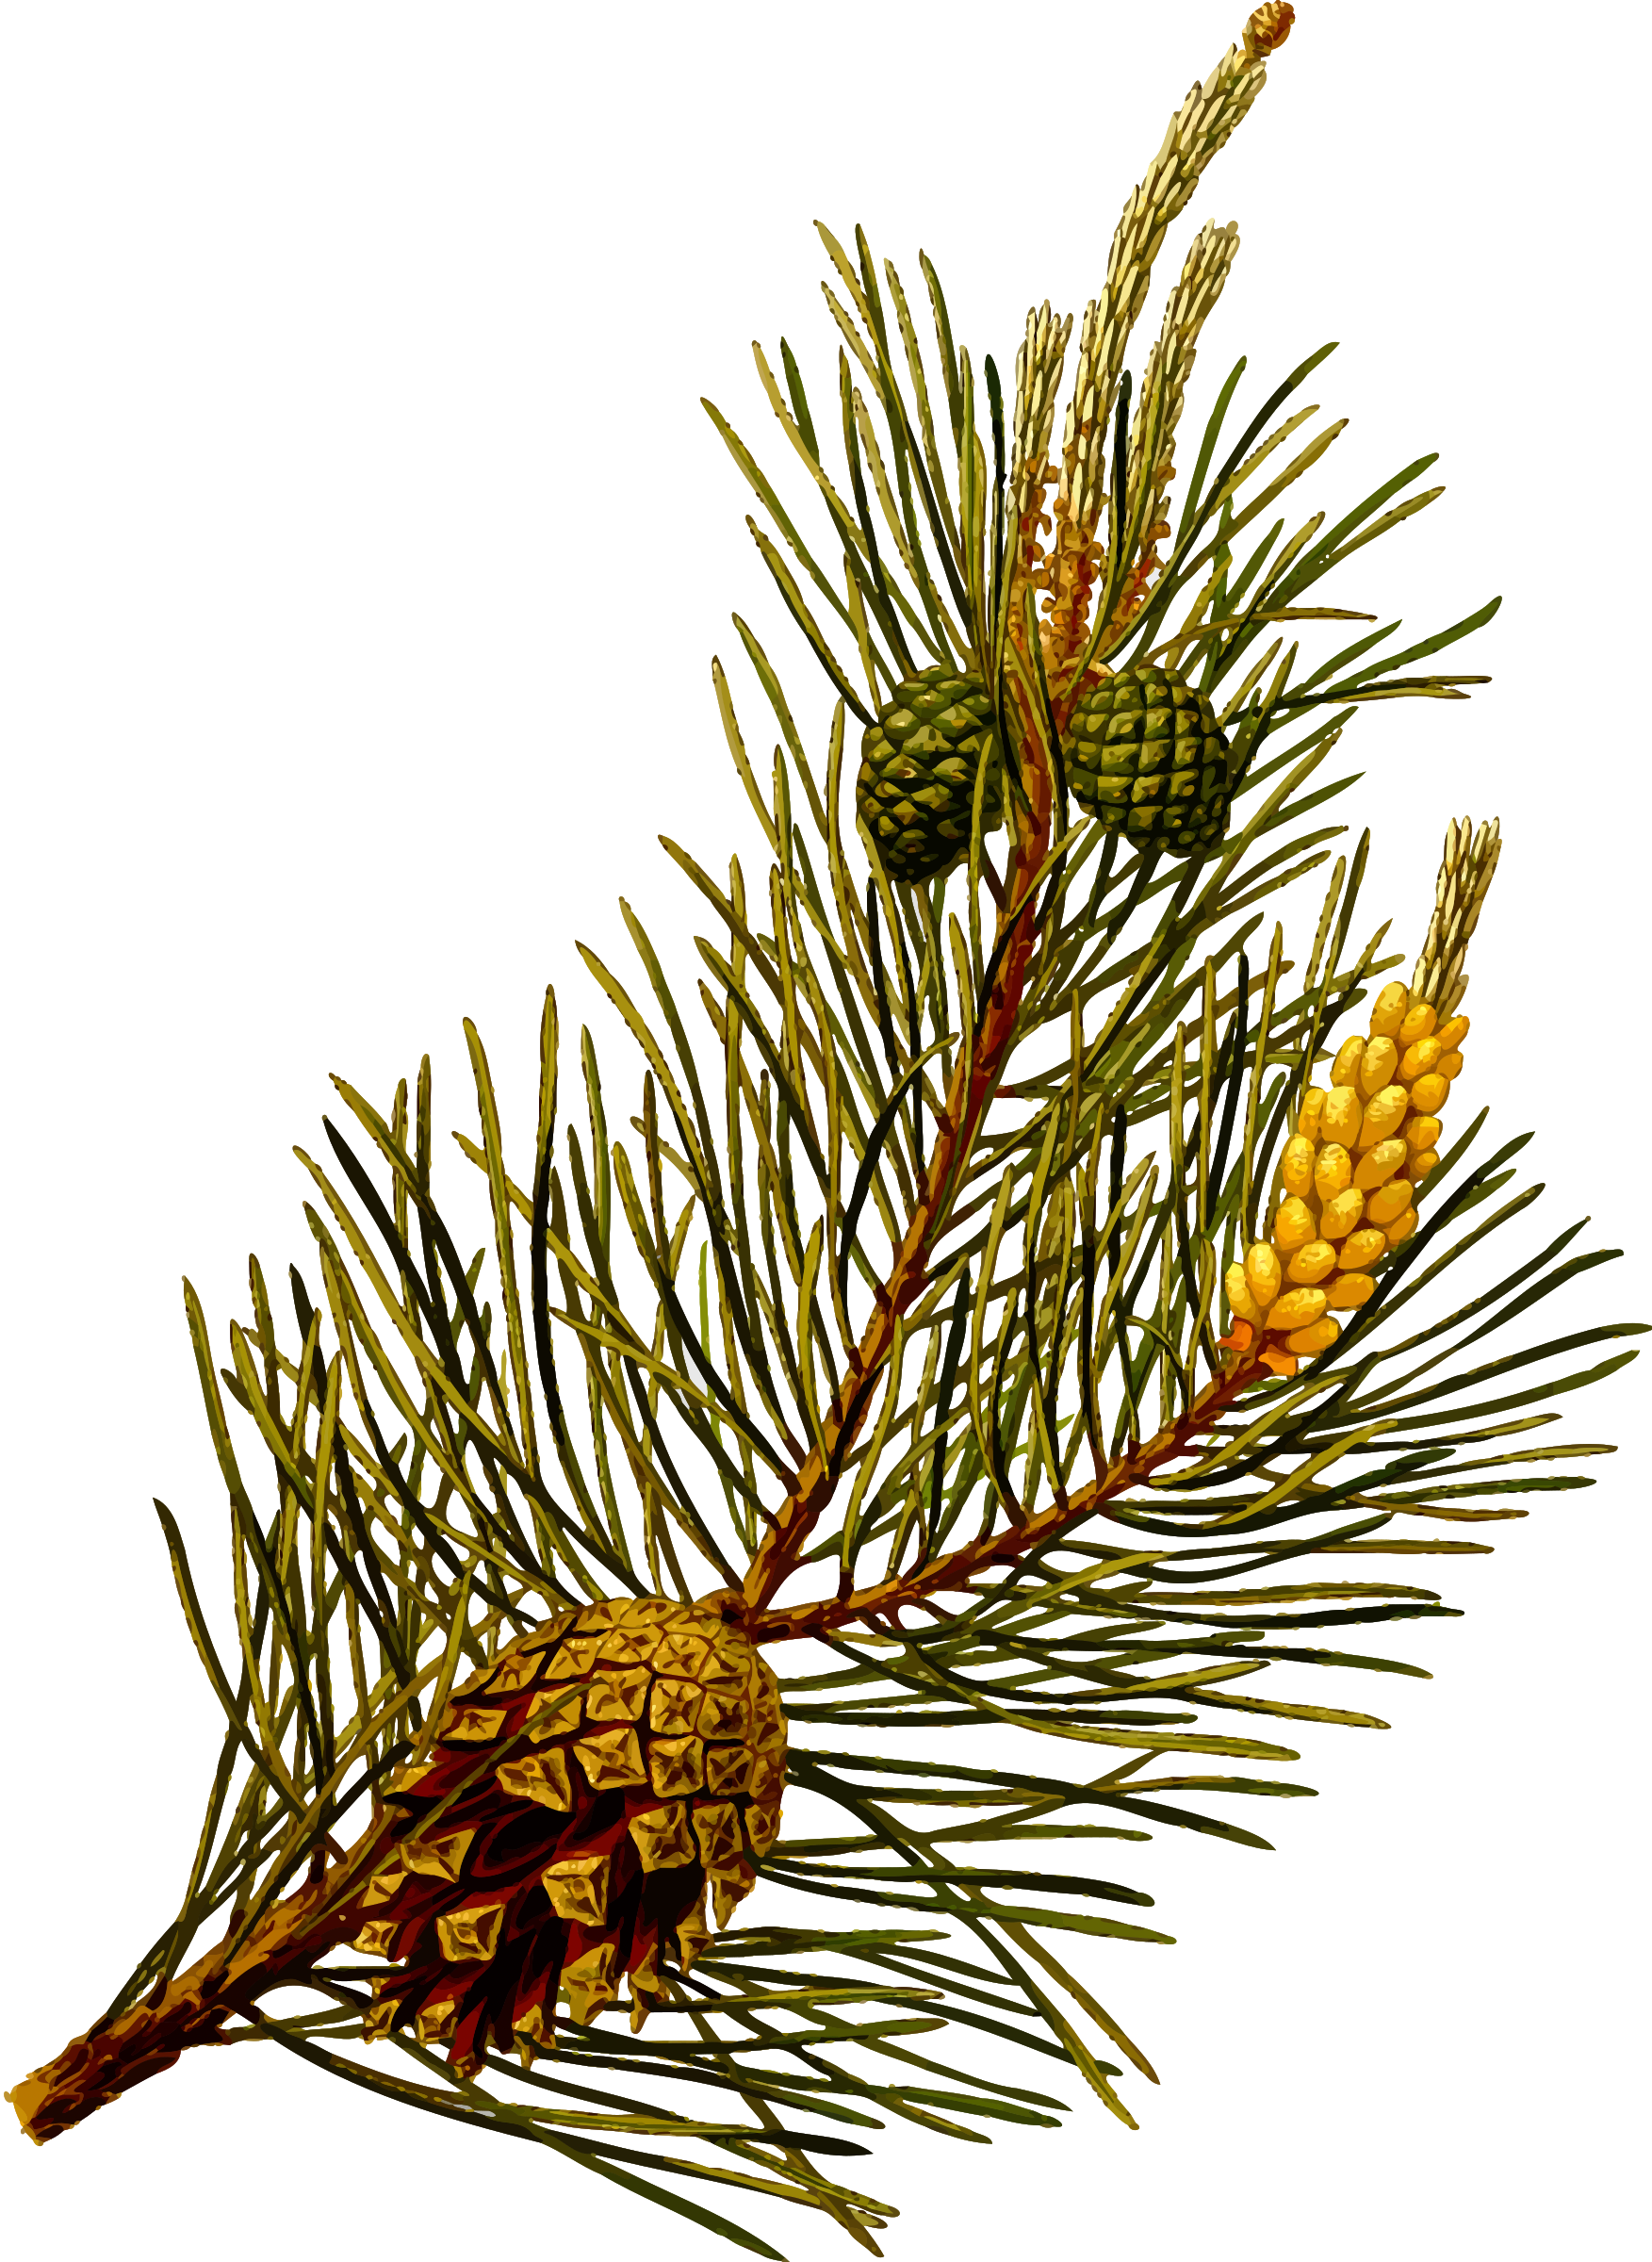 Scots pine (detailed) by Firkin